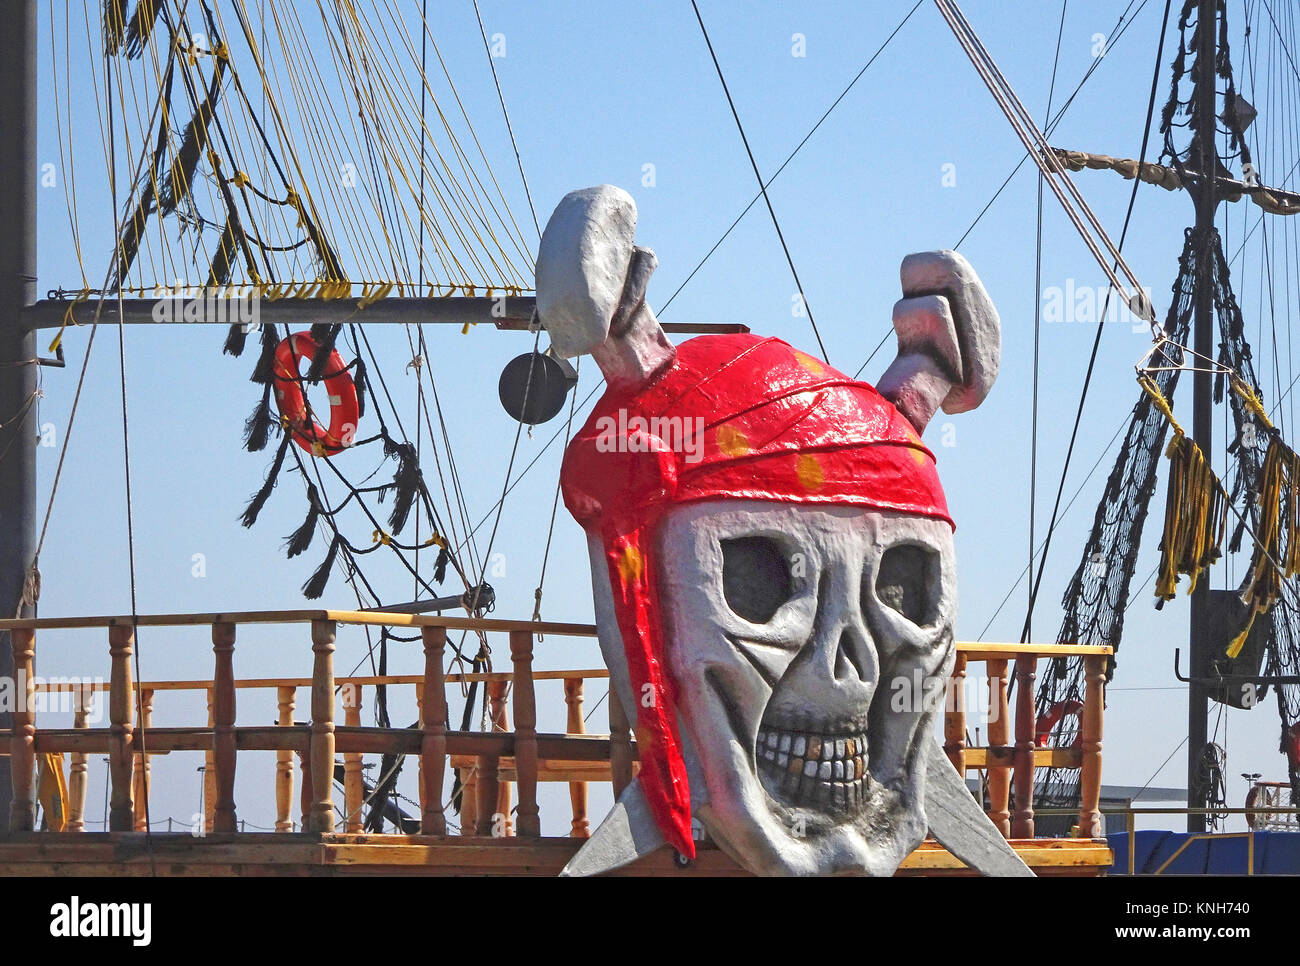 Excursion ship with pirate optic at the harbour of Alanya, turkish riviera, Turkey - Stock Image